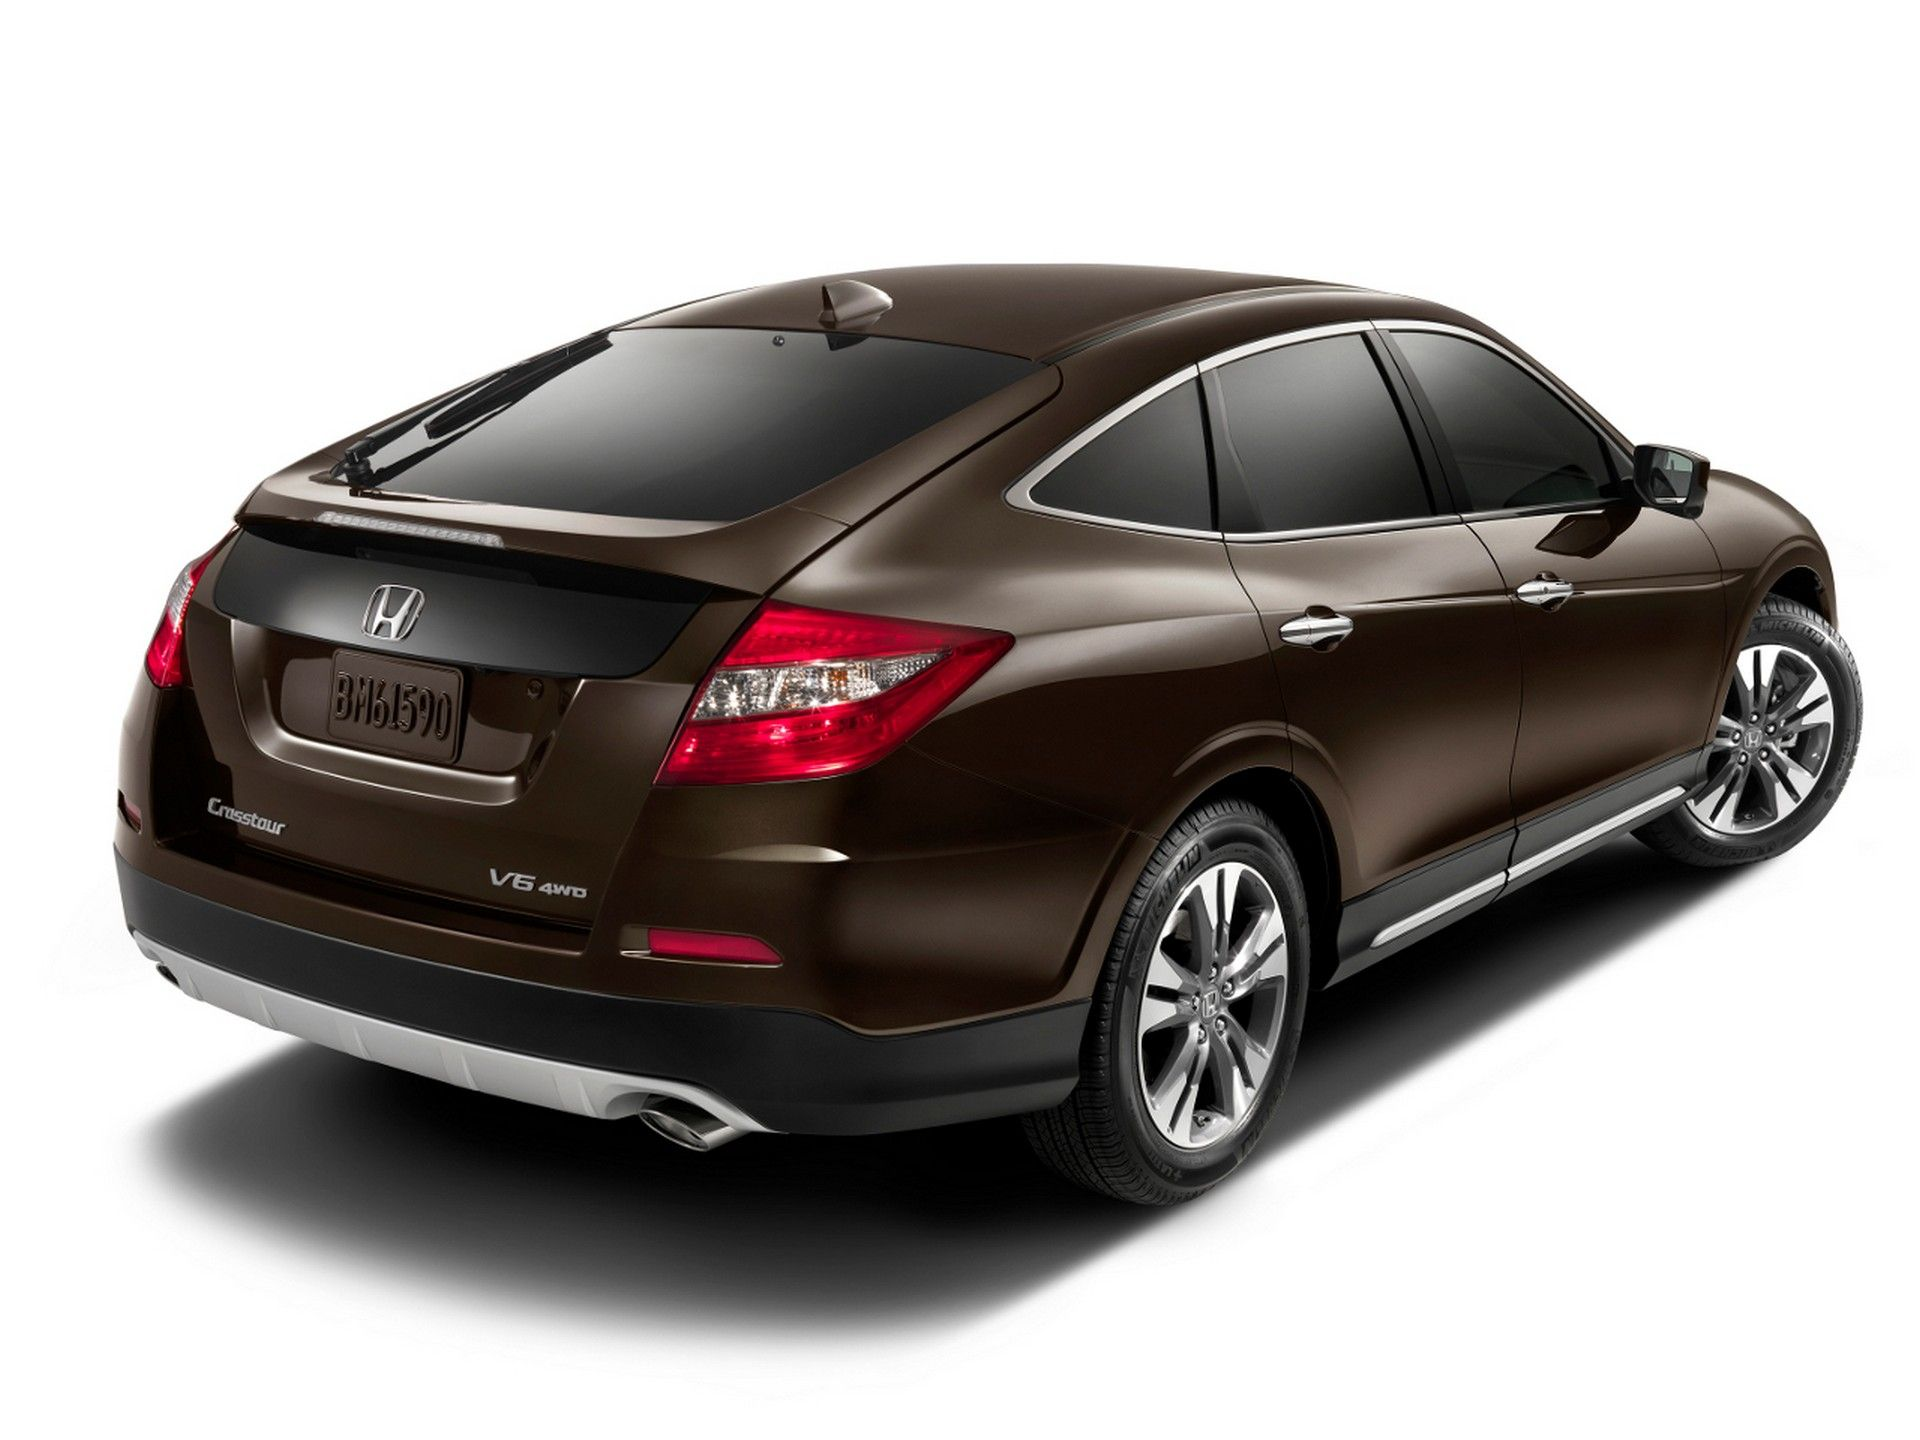 2020 Honda Crosstour v6 awd Honda, Hatchback cars, Car